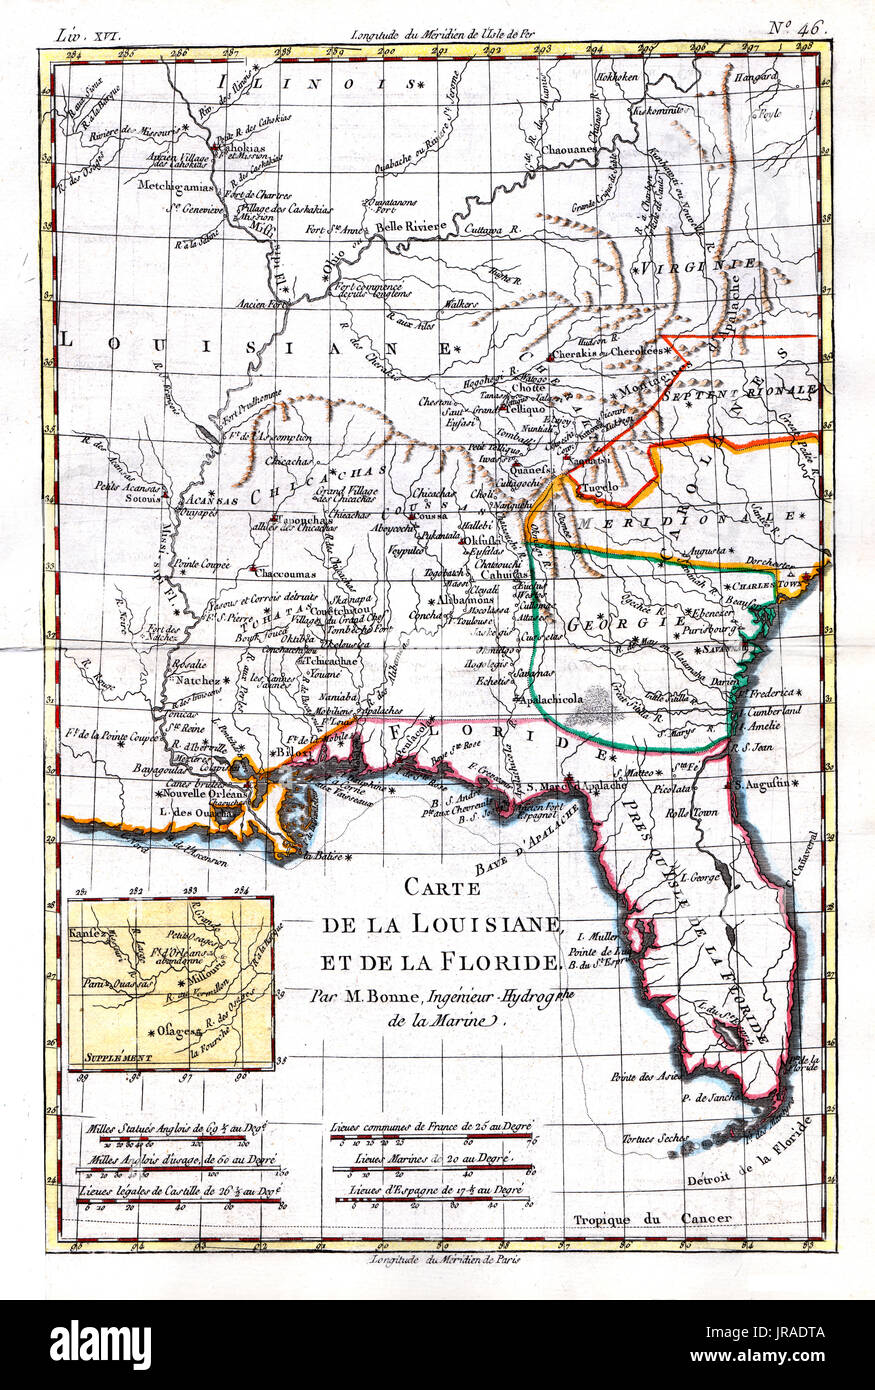 Map Of Louisiana Territory.Louisiana Territory Map Stock Photos Louisiana Territory Map Stock